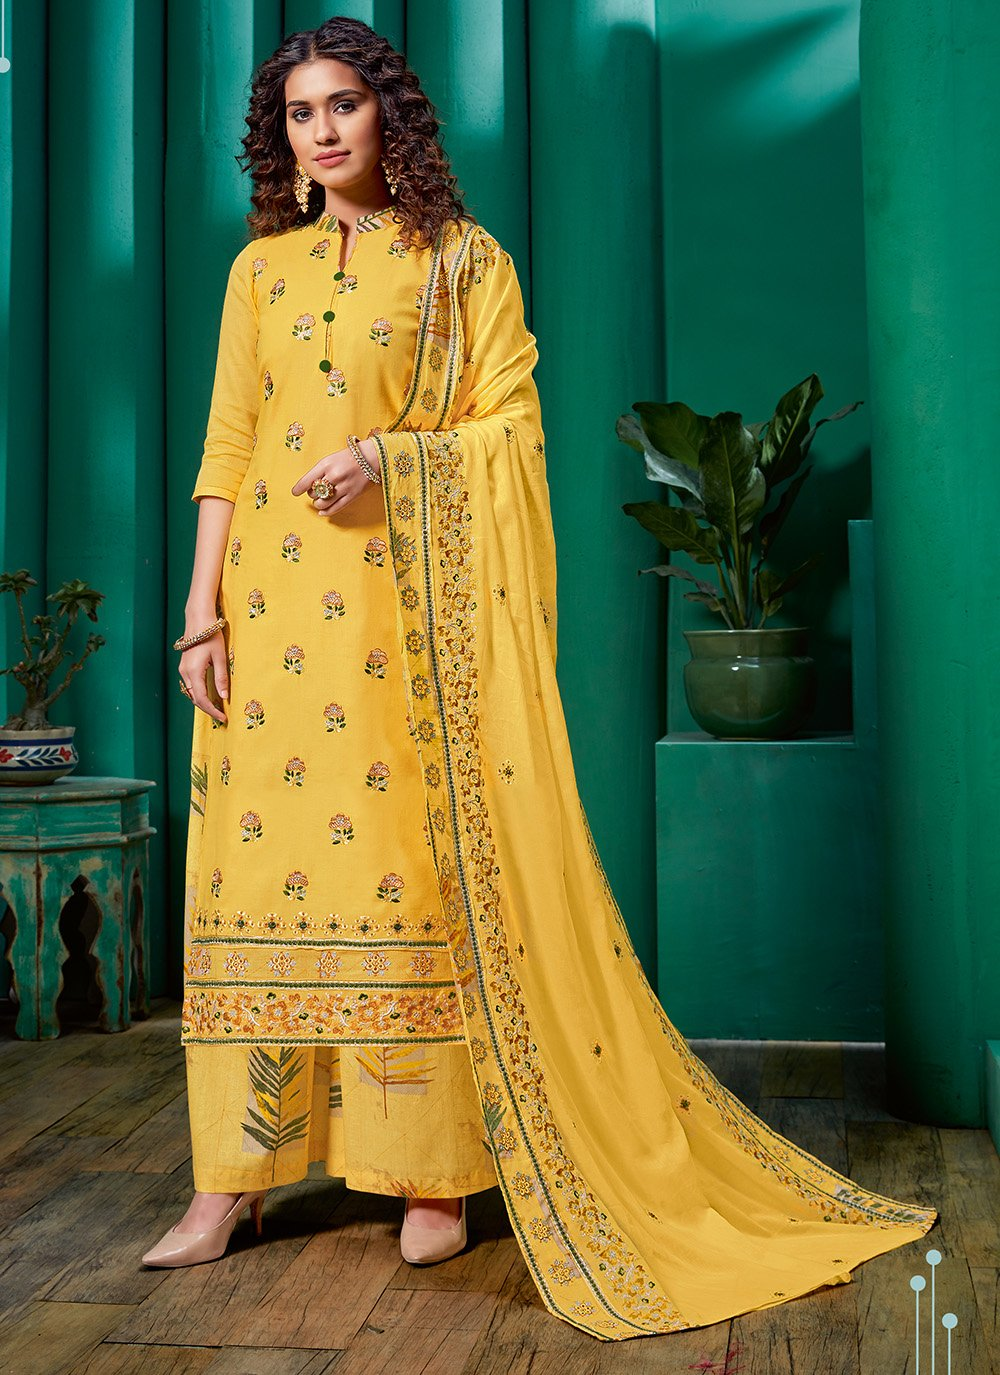 Cotton Embroidered Palazzo Salwar Kameez in Yellow